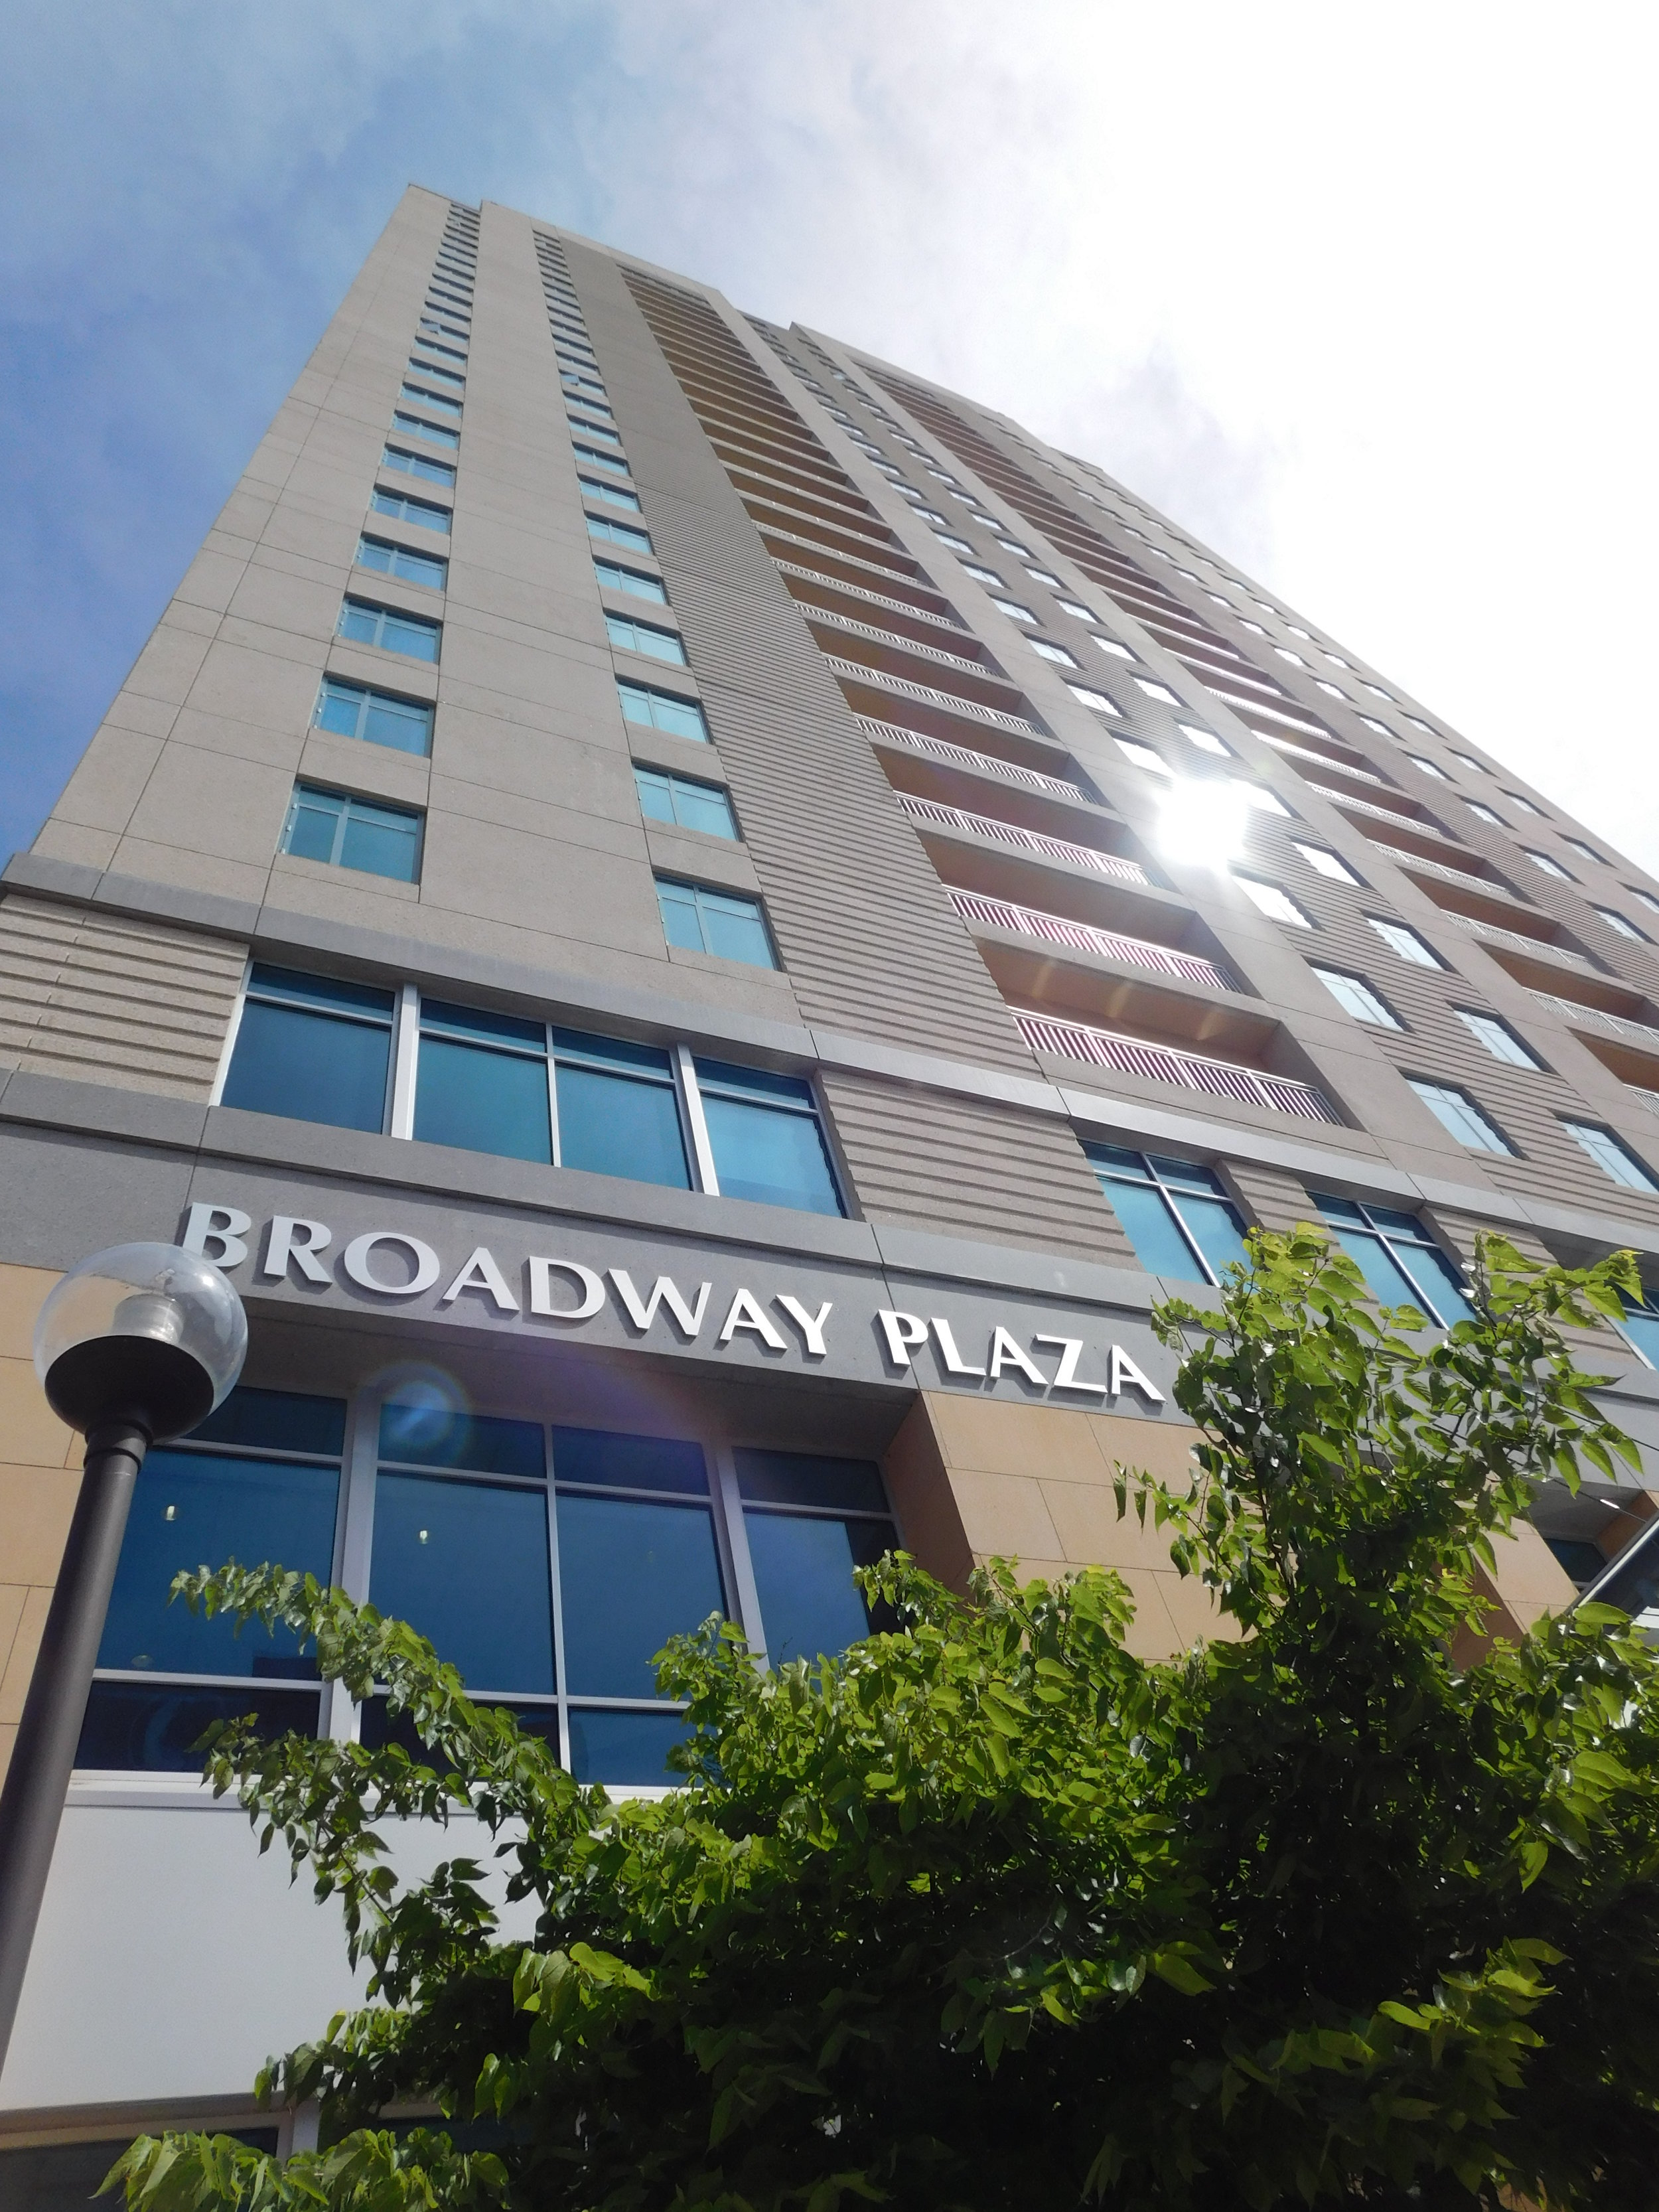 Broadway Plaza - Mayo Clinic offers short hotel stays, extended stays, and apartment leases in Rochester, Minnesota.